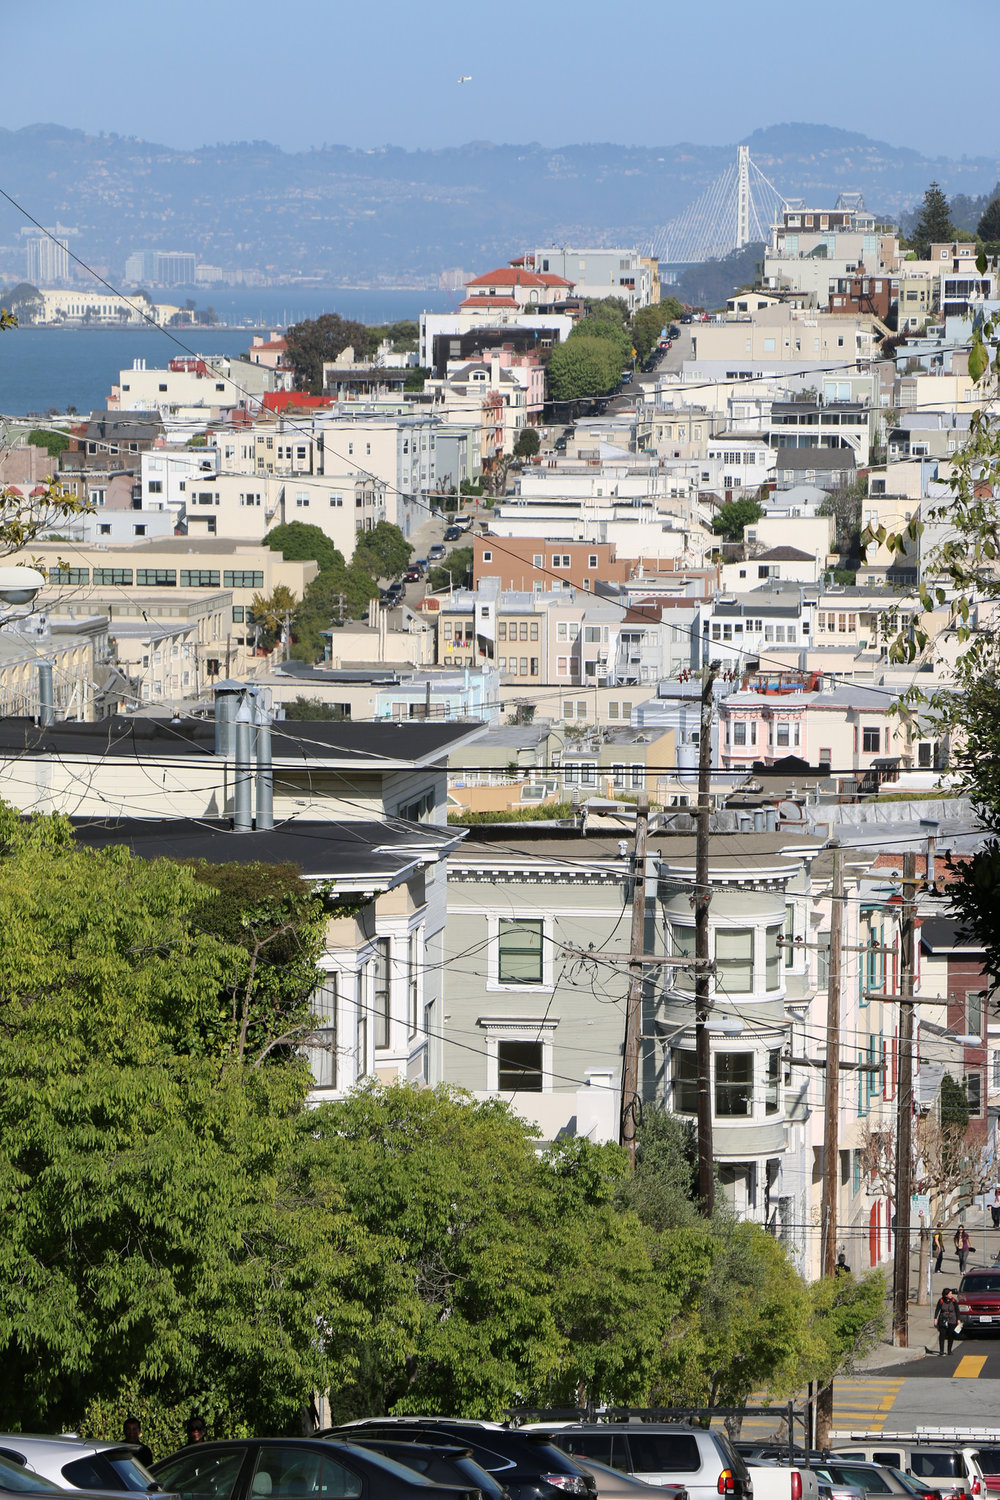 View from Lombard Street_14923219440_l.jpg